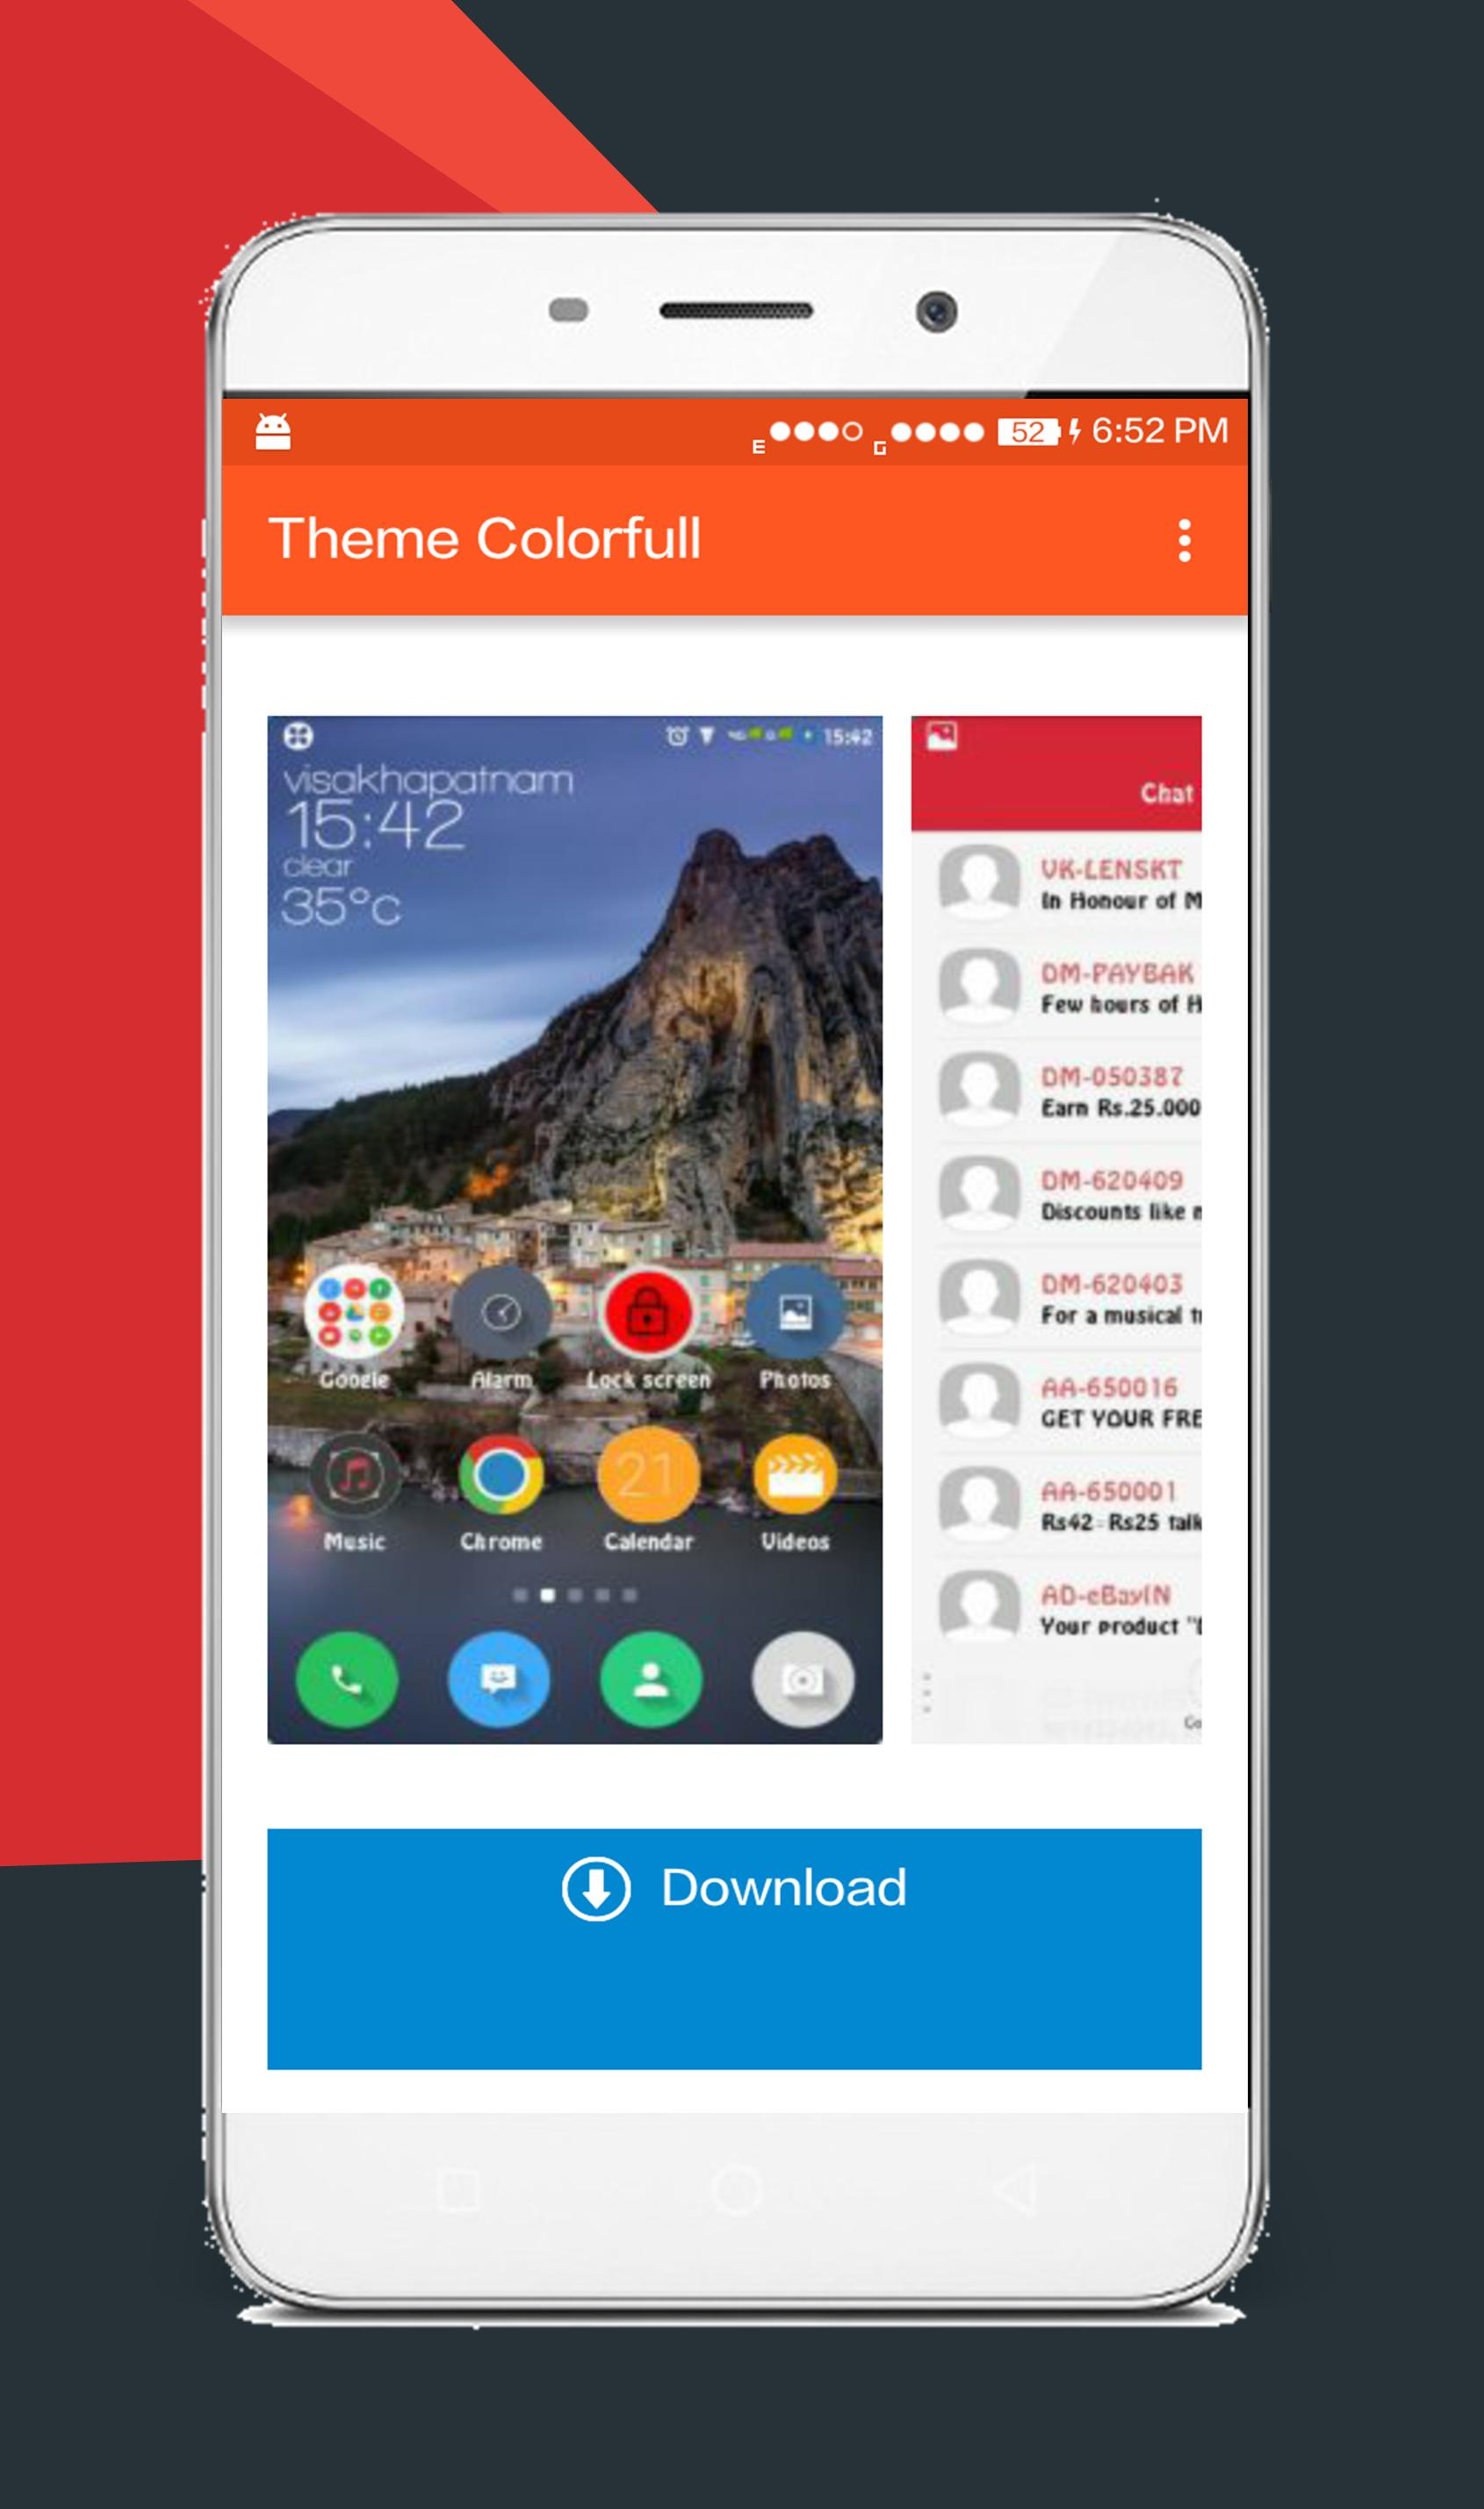 Coolpad Themes : Coolpad Note for Android - APK Download